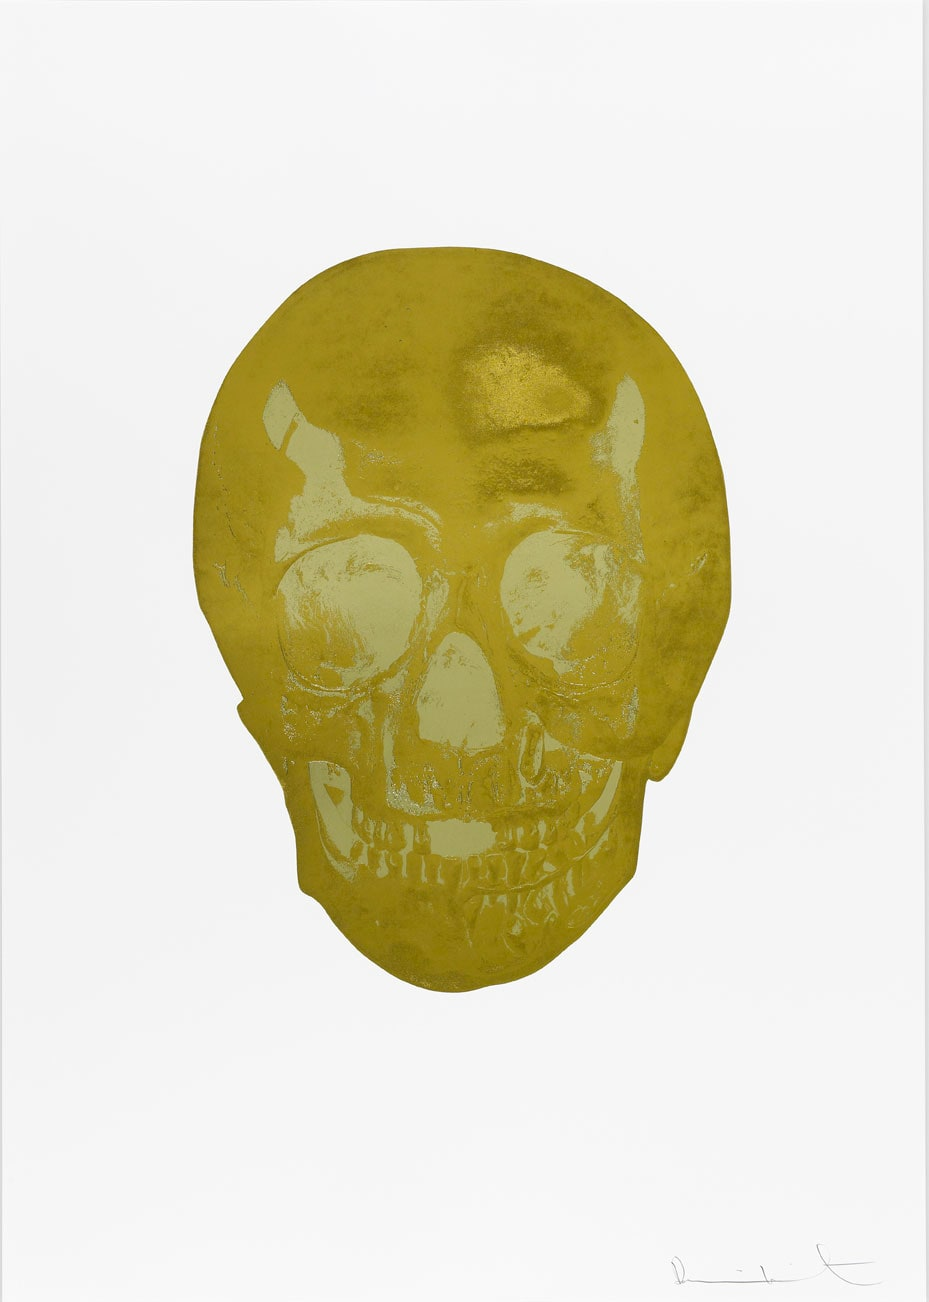 Damien Hirst Death Or Glory Oriental Gold/Cool Gold Glorious Skull, 2011 2 colour foil block on 300gsm Arches 88 archival paper. Signed and numbered. Published by Paul Stolper and Other Criteria. White aluminium powder coated frame. 72 x 51 cm; Framed 76.8 x 55.8 cm OC8366 Edition of 2